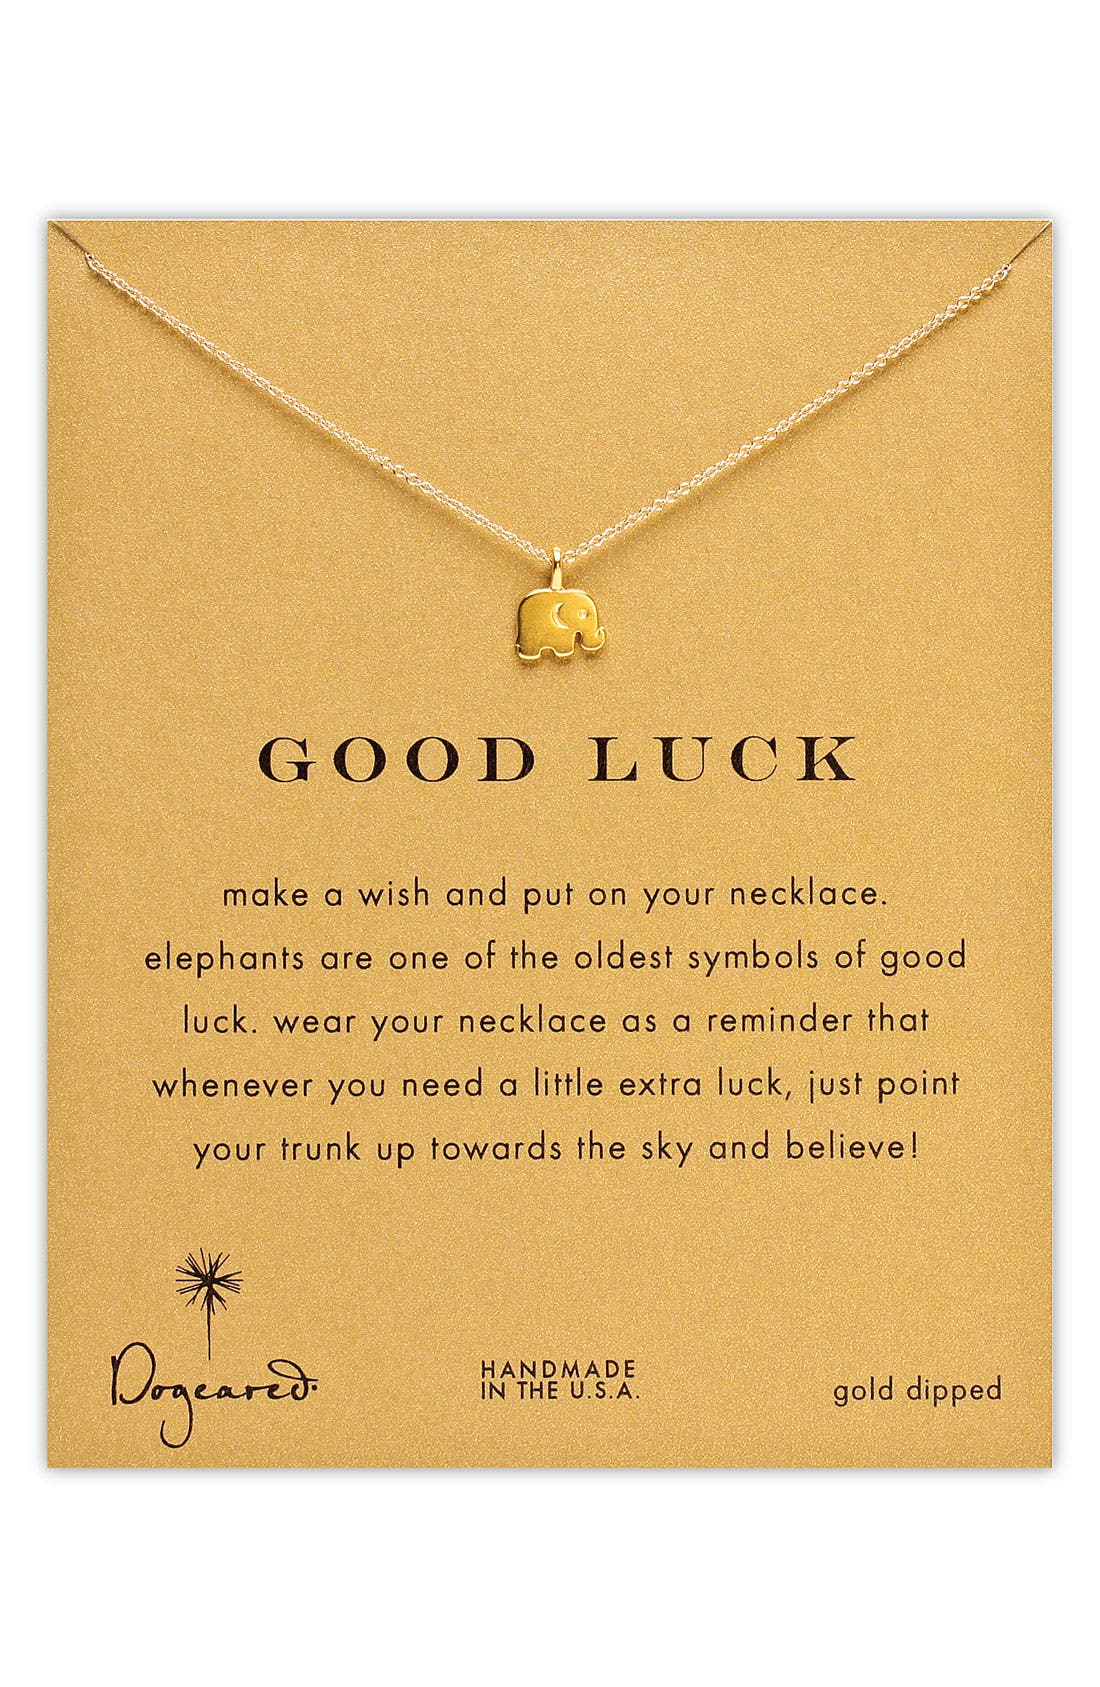 Alternate Image 1 Selected - Dogeared 'Reminder - Good Luck' Elephant Necklace